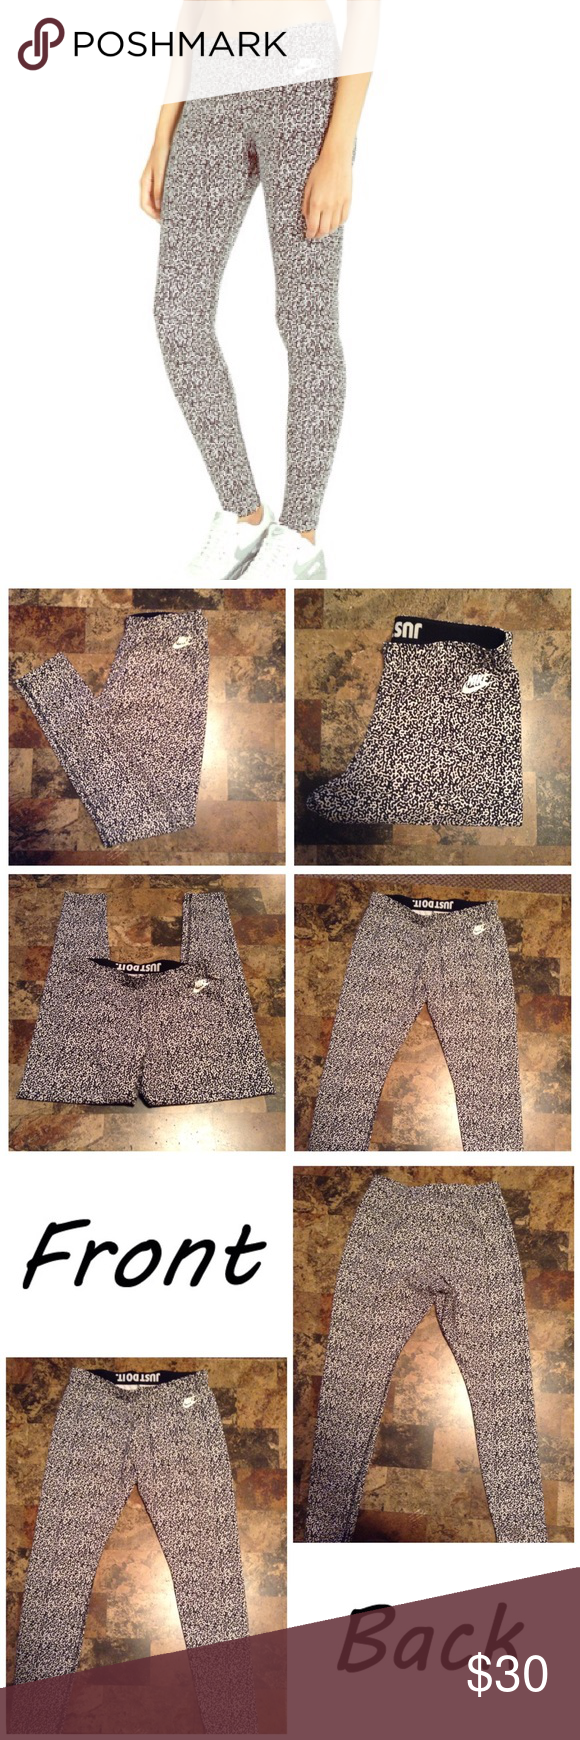 "Nike Printed Leggings First pic of model wearing this style of Leggings.  Last 3 pics are of actual item/color. Size Large. Color is black/white. Stretches. Leg Opening ""4.5. Laying flat ""14. Length ""36. Inseam ""27. Nike Pants Leggings"